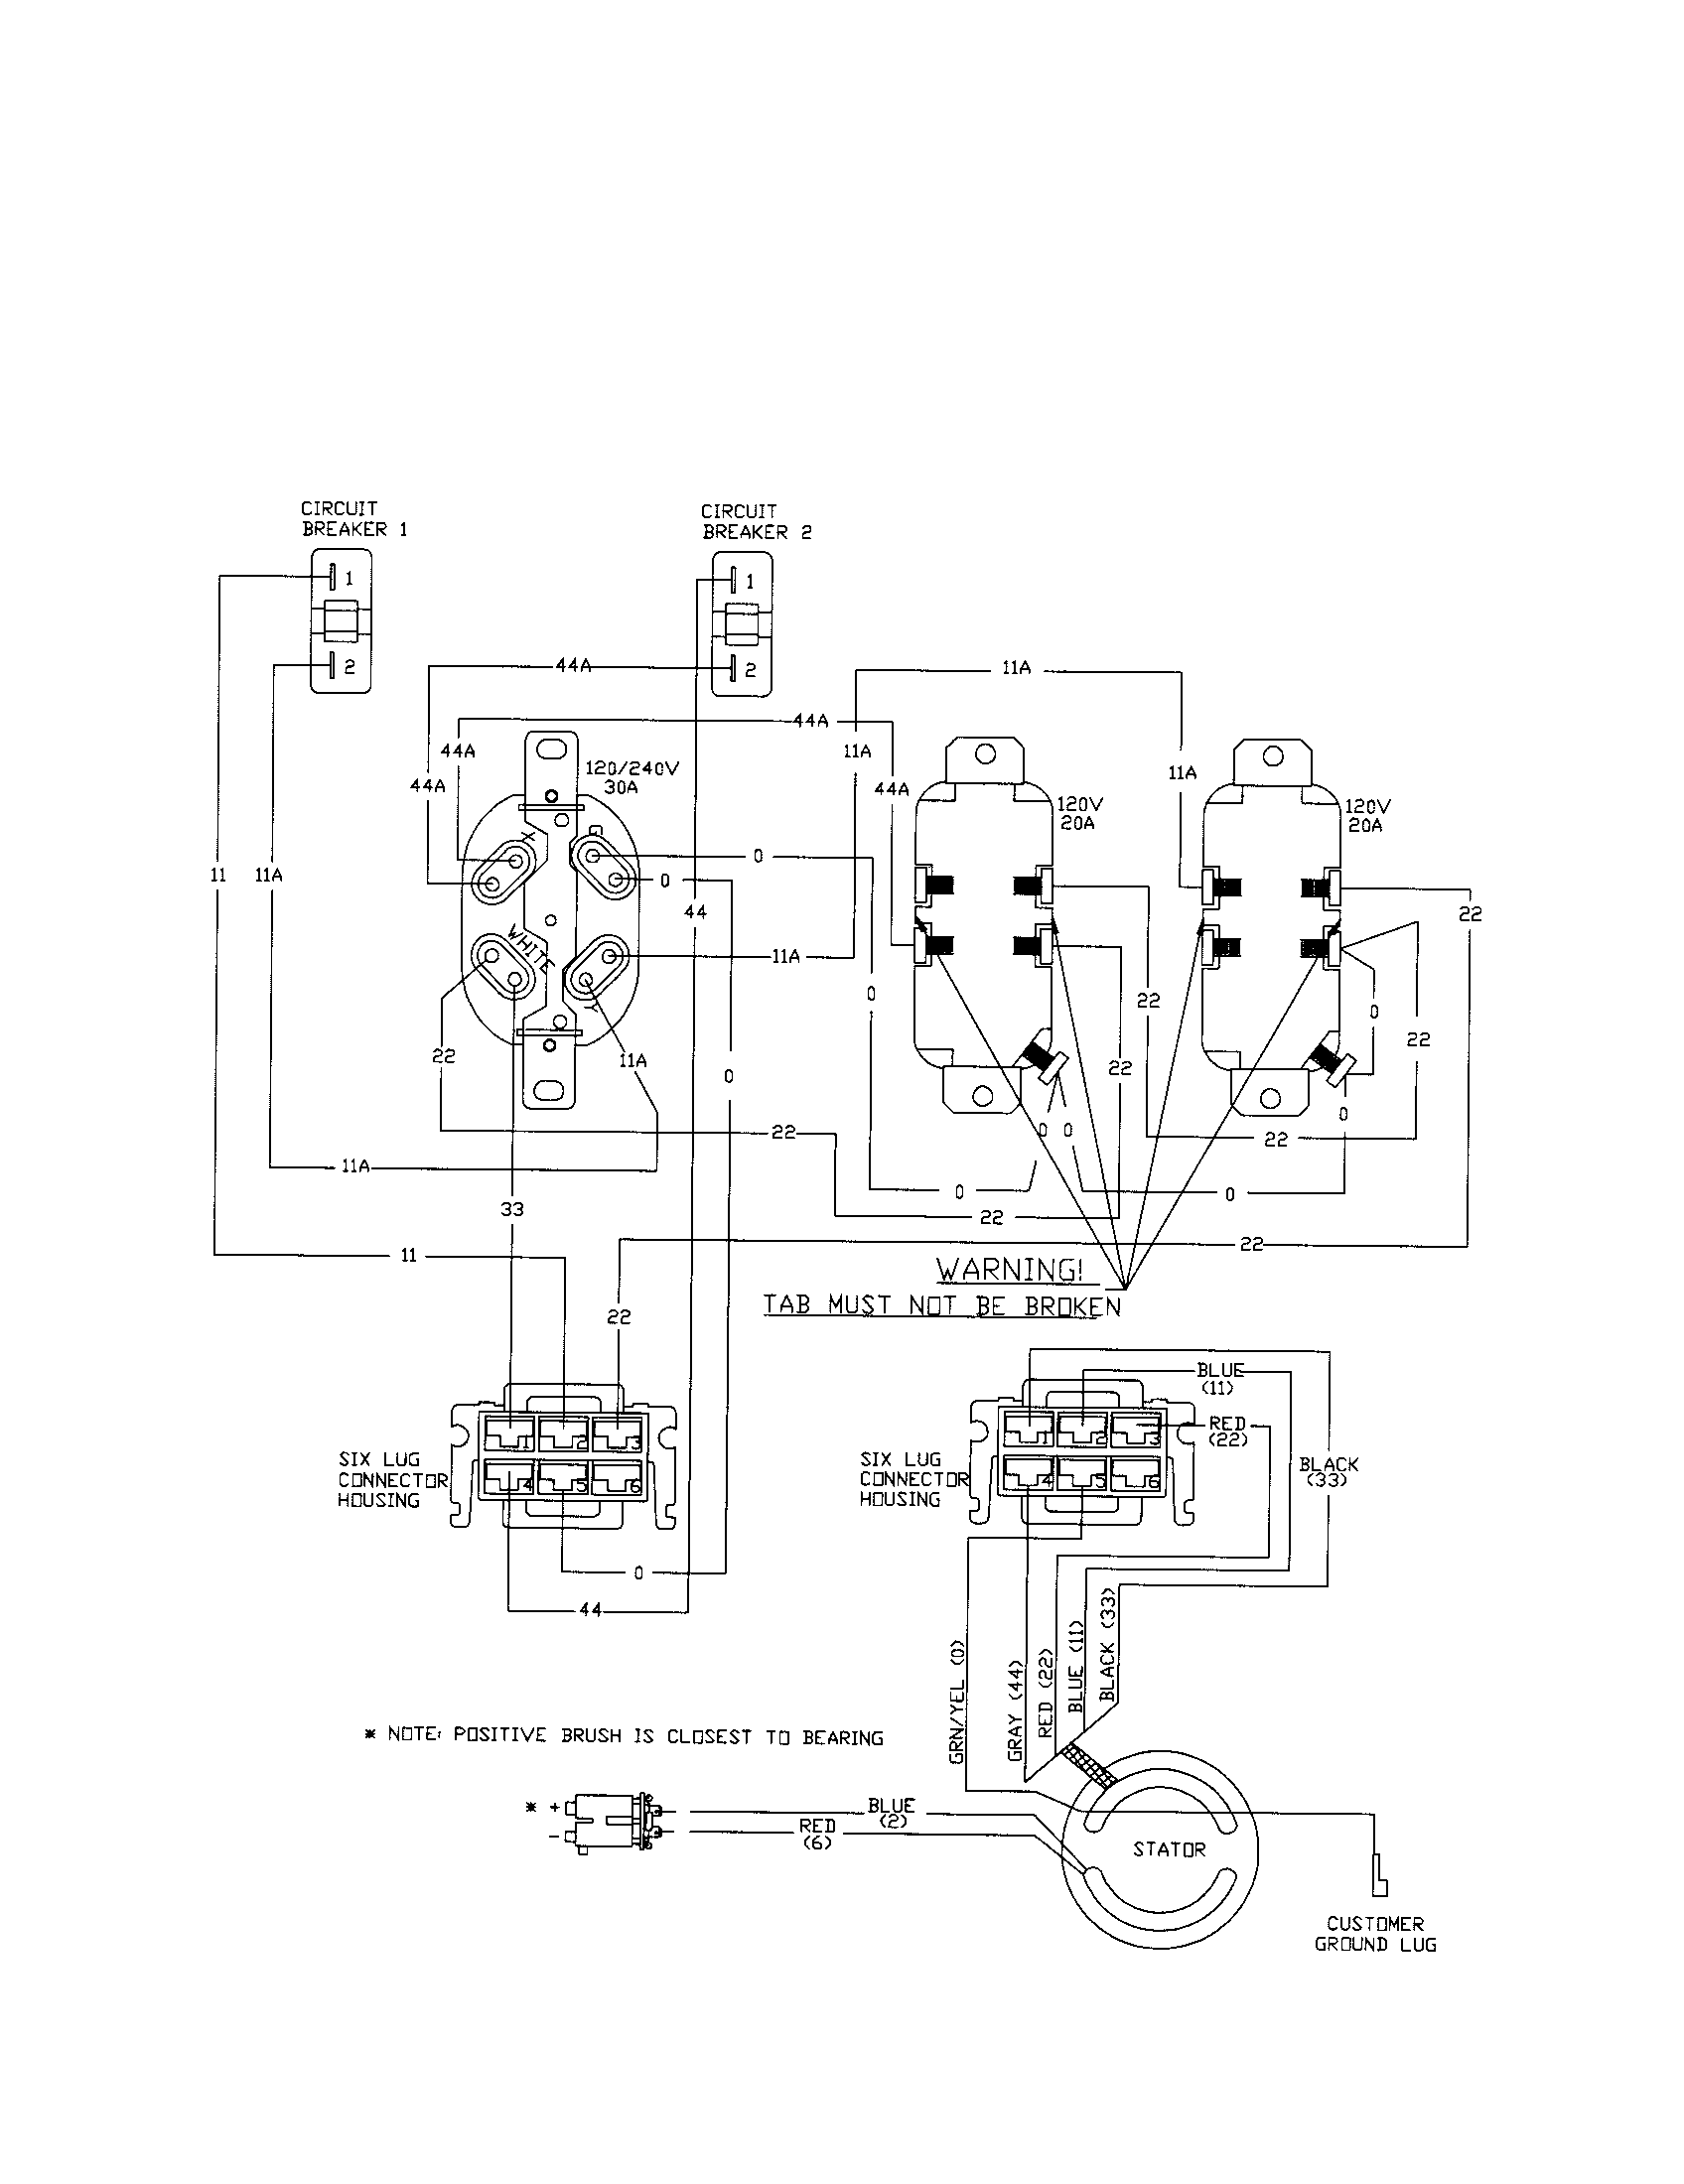 hight resolution of onan 4000 generator wiring diagram onan 4000 rv generator wiring diagram wiring diagrams free download jeep